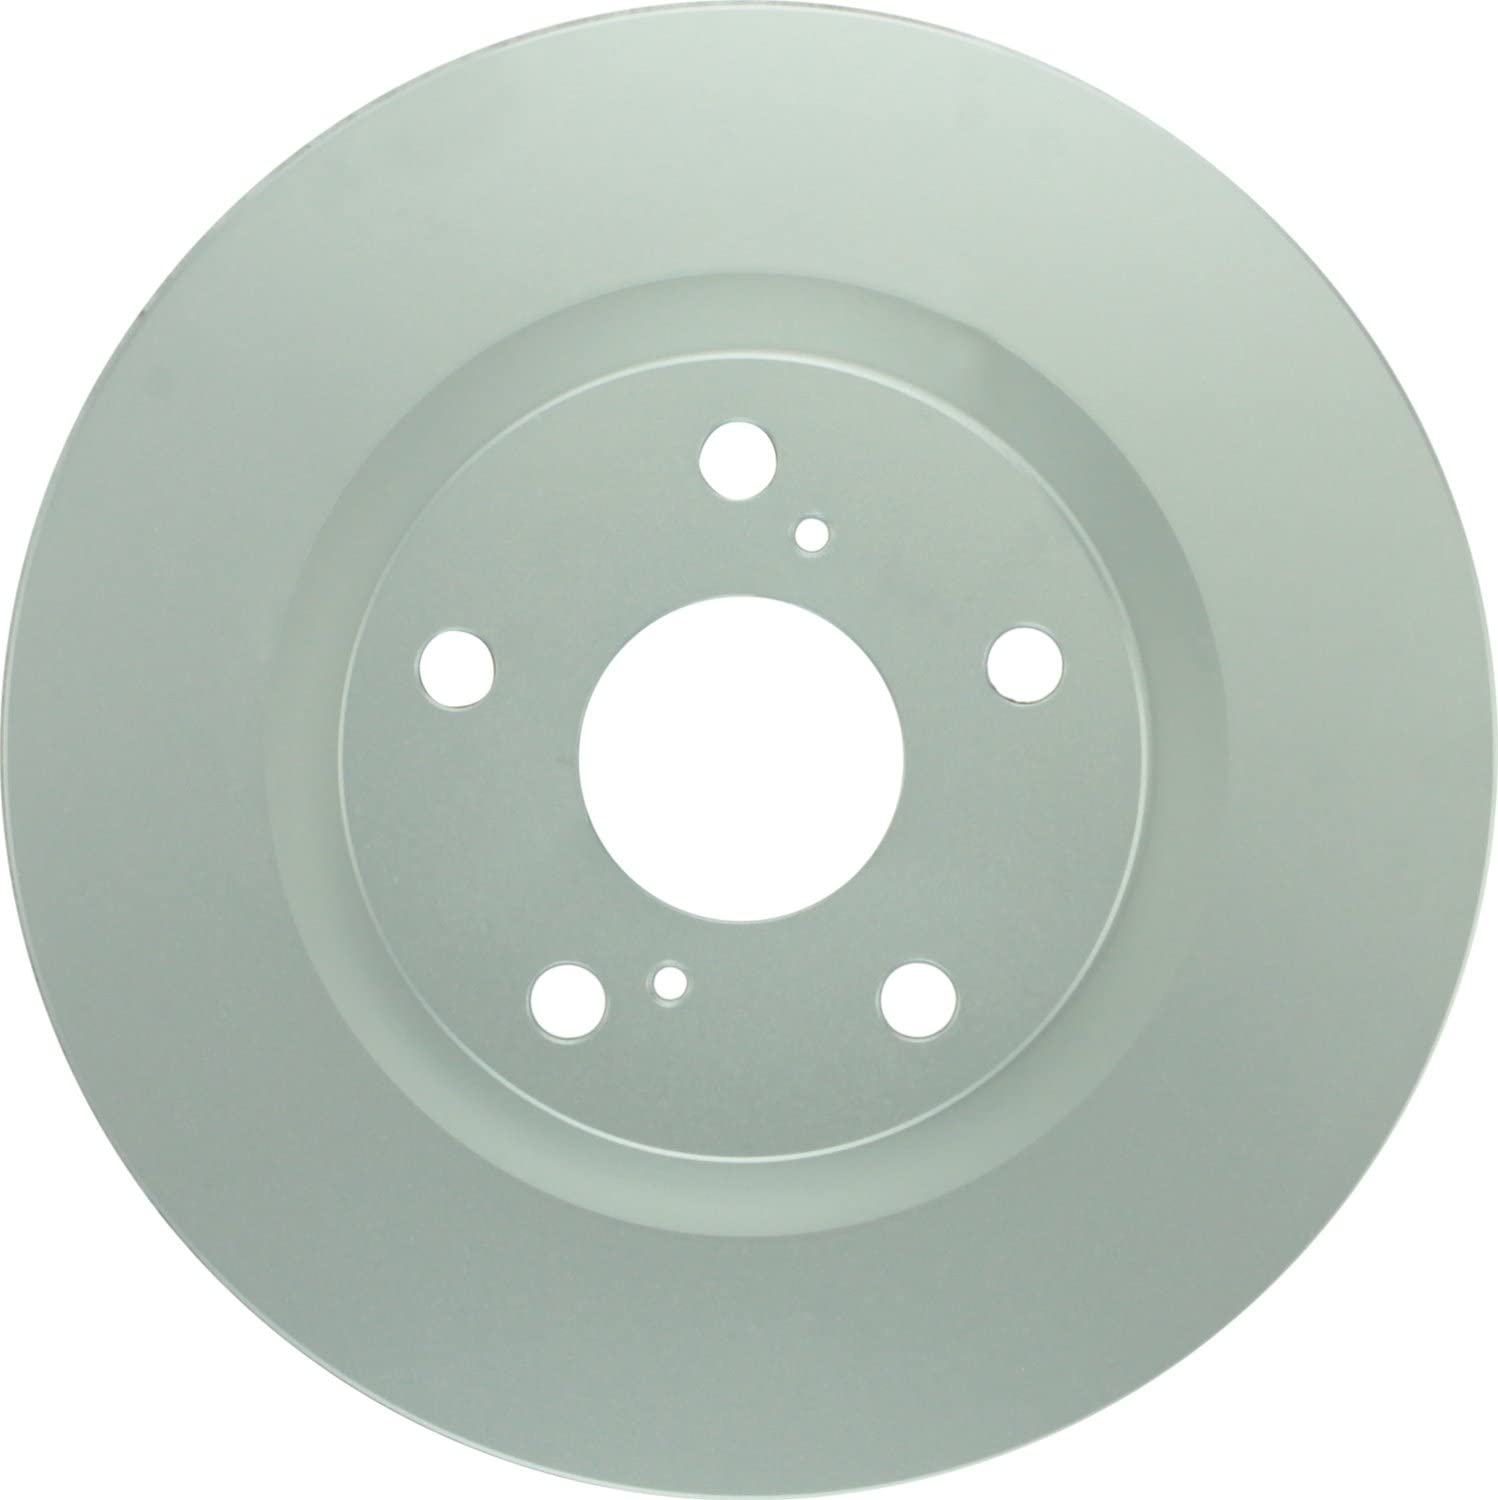 Bosch 16010155 QuietCast Premium Disc Brake Rotor For 2002-2007 Jeep Liberty; Front